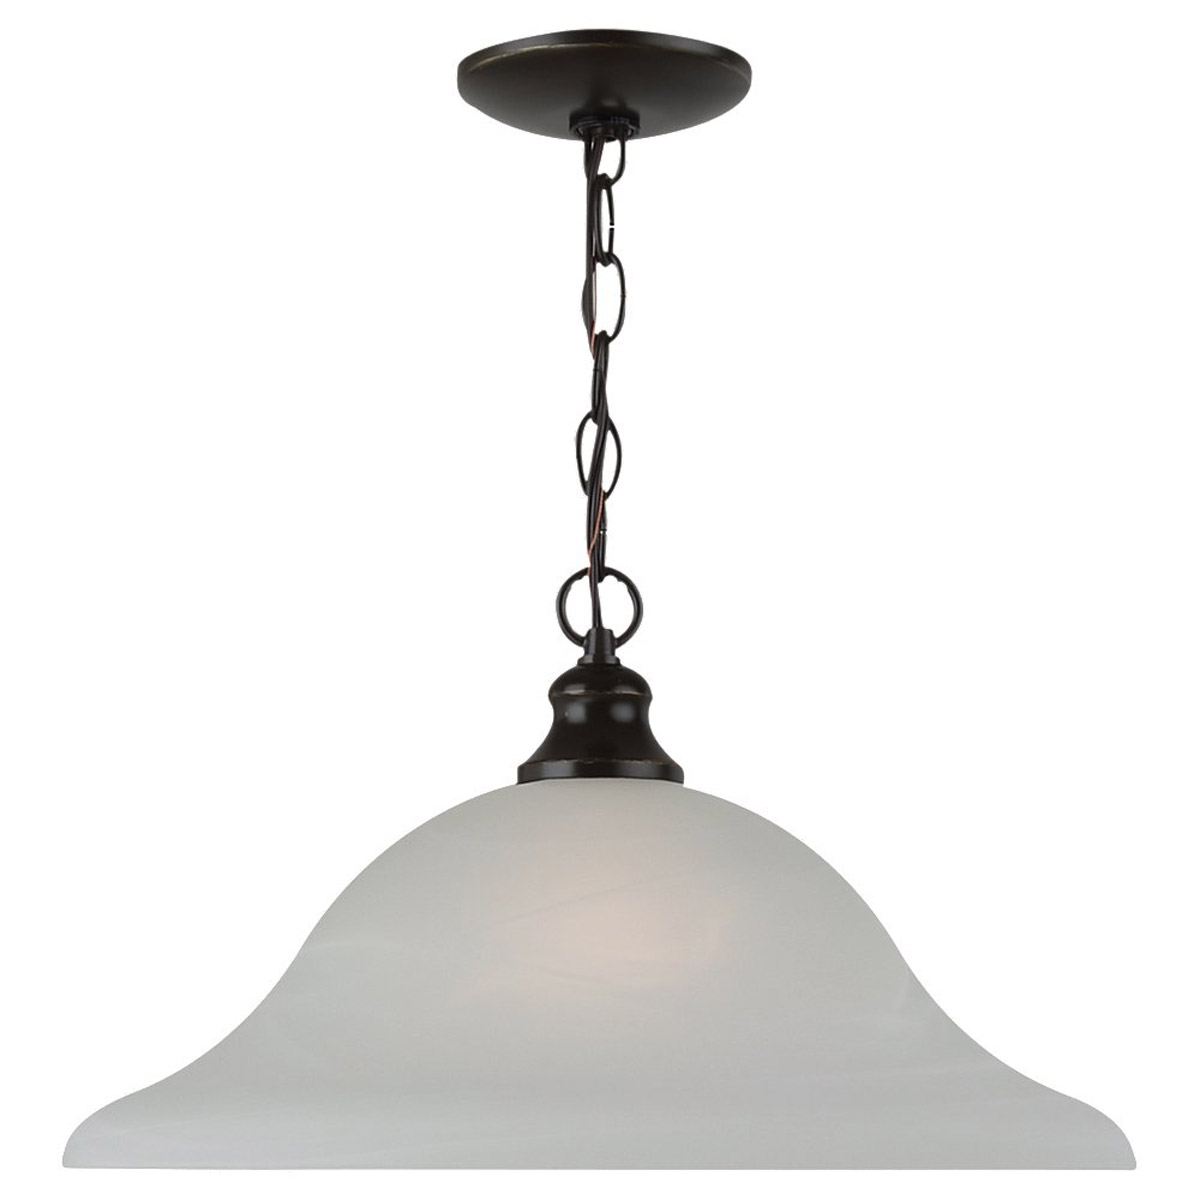 Sea Gull Lighting Windgate 1 Light Pendant in Heirloom Bronze 65940-782